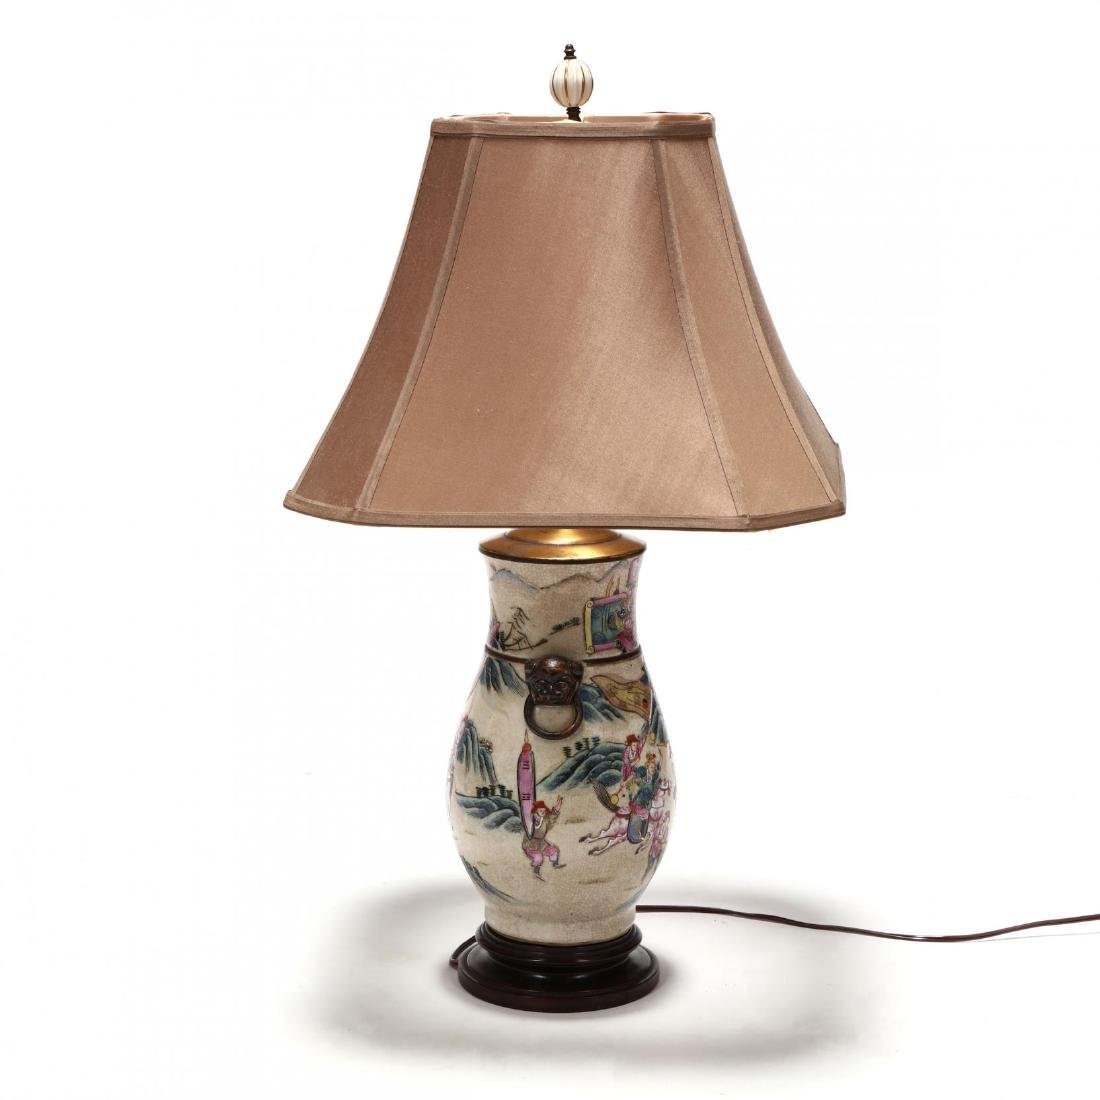 Chinese Export Porcelain Table Lamp - 3